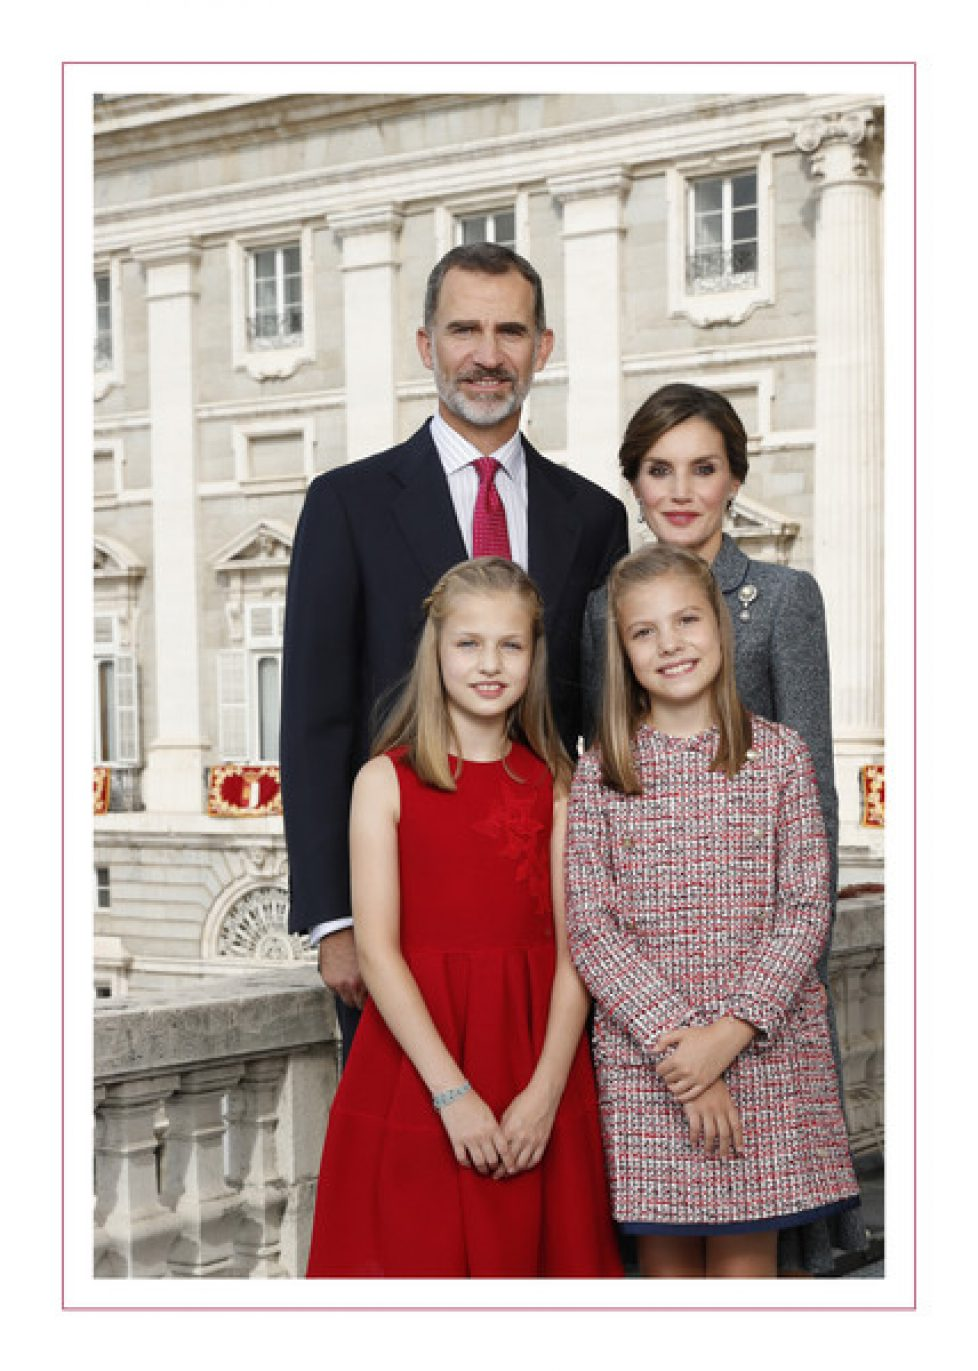 Spanish+Royals+Christmas+Cards+2015+HLL-yiEOpTTl